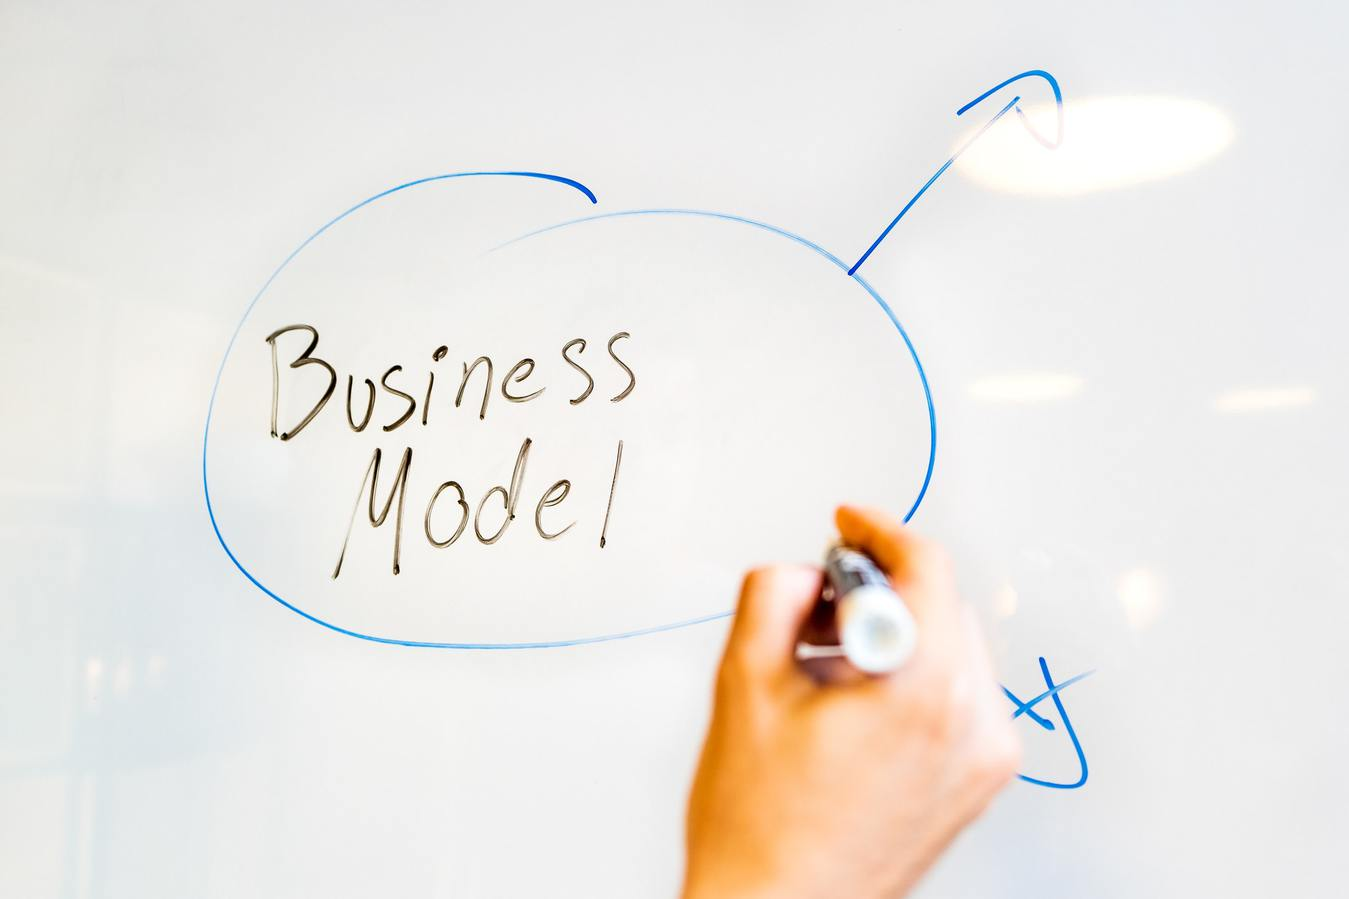 """business model"" escrito no quadro"